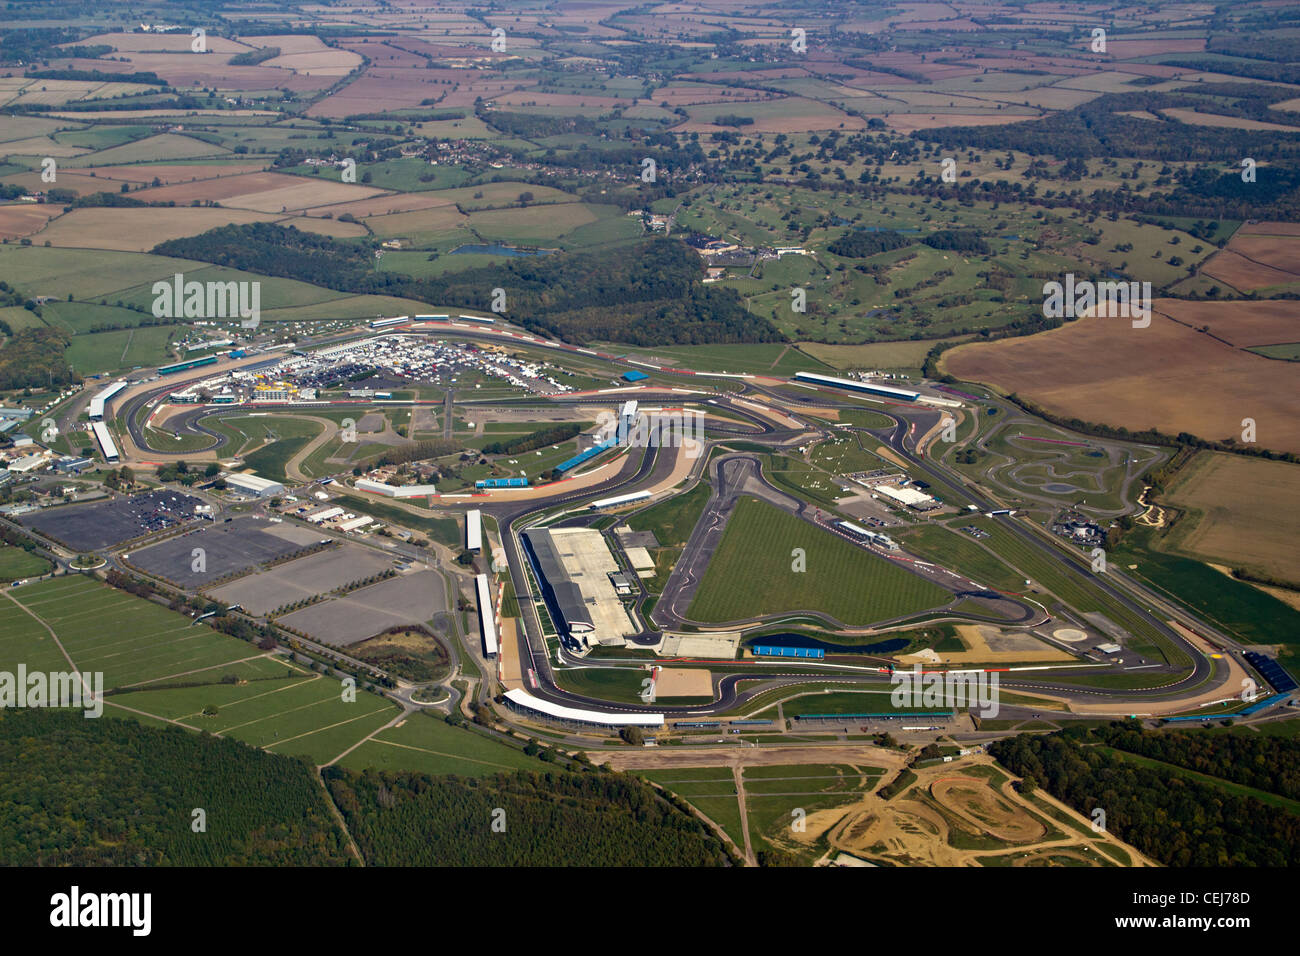 Silverstone race track from the air Stock Photo: 43426781 - Alamy